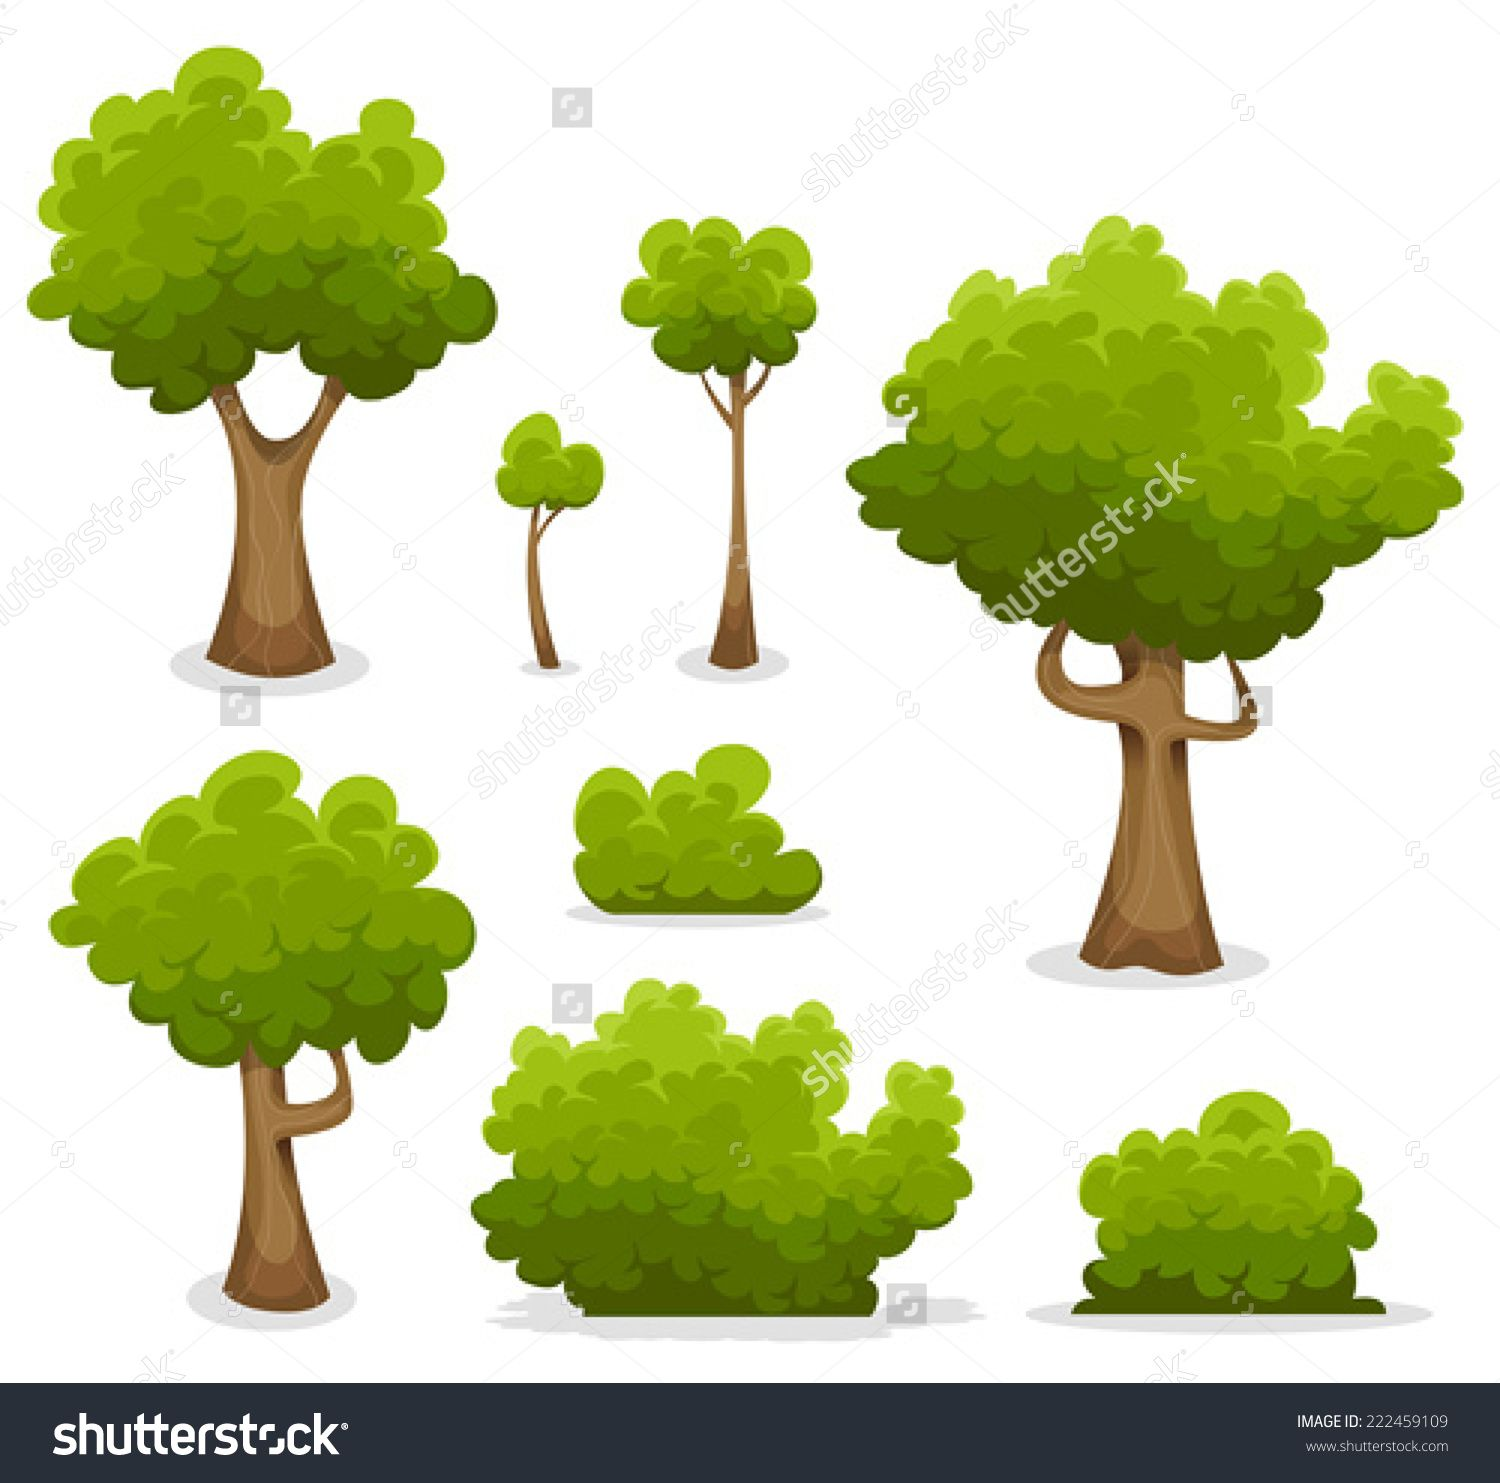 Bushes clipart chibi. Forest trees hedges and